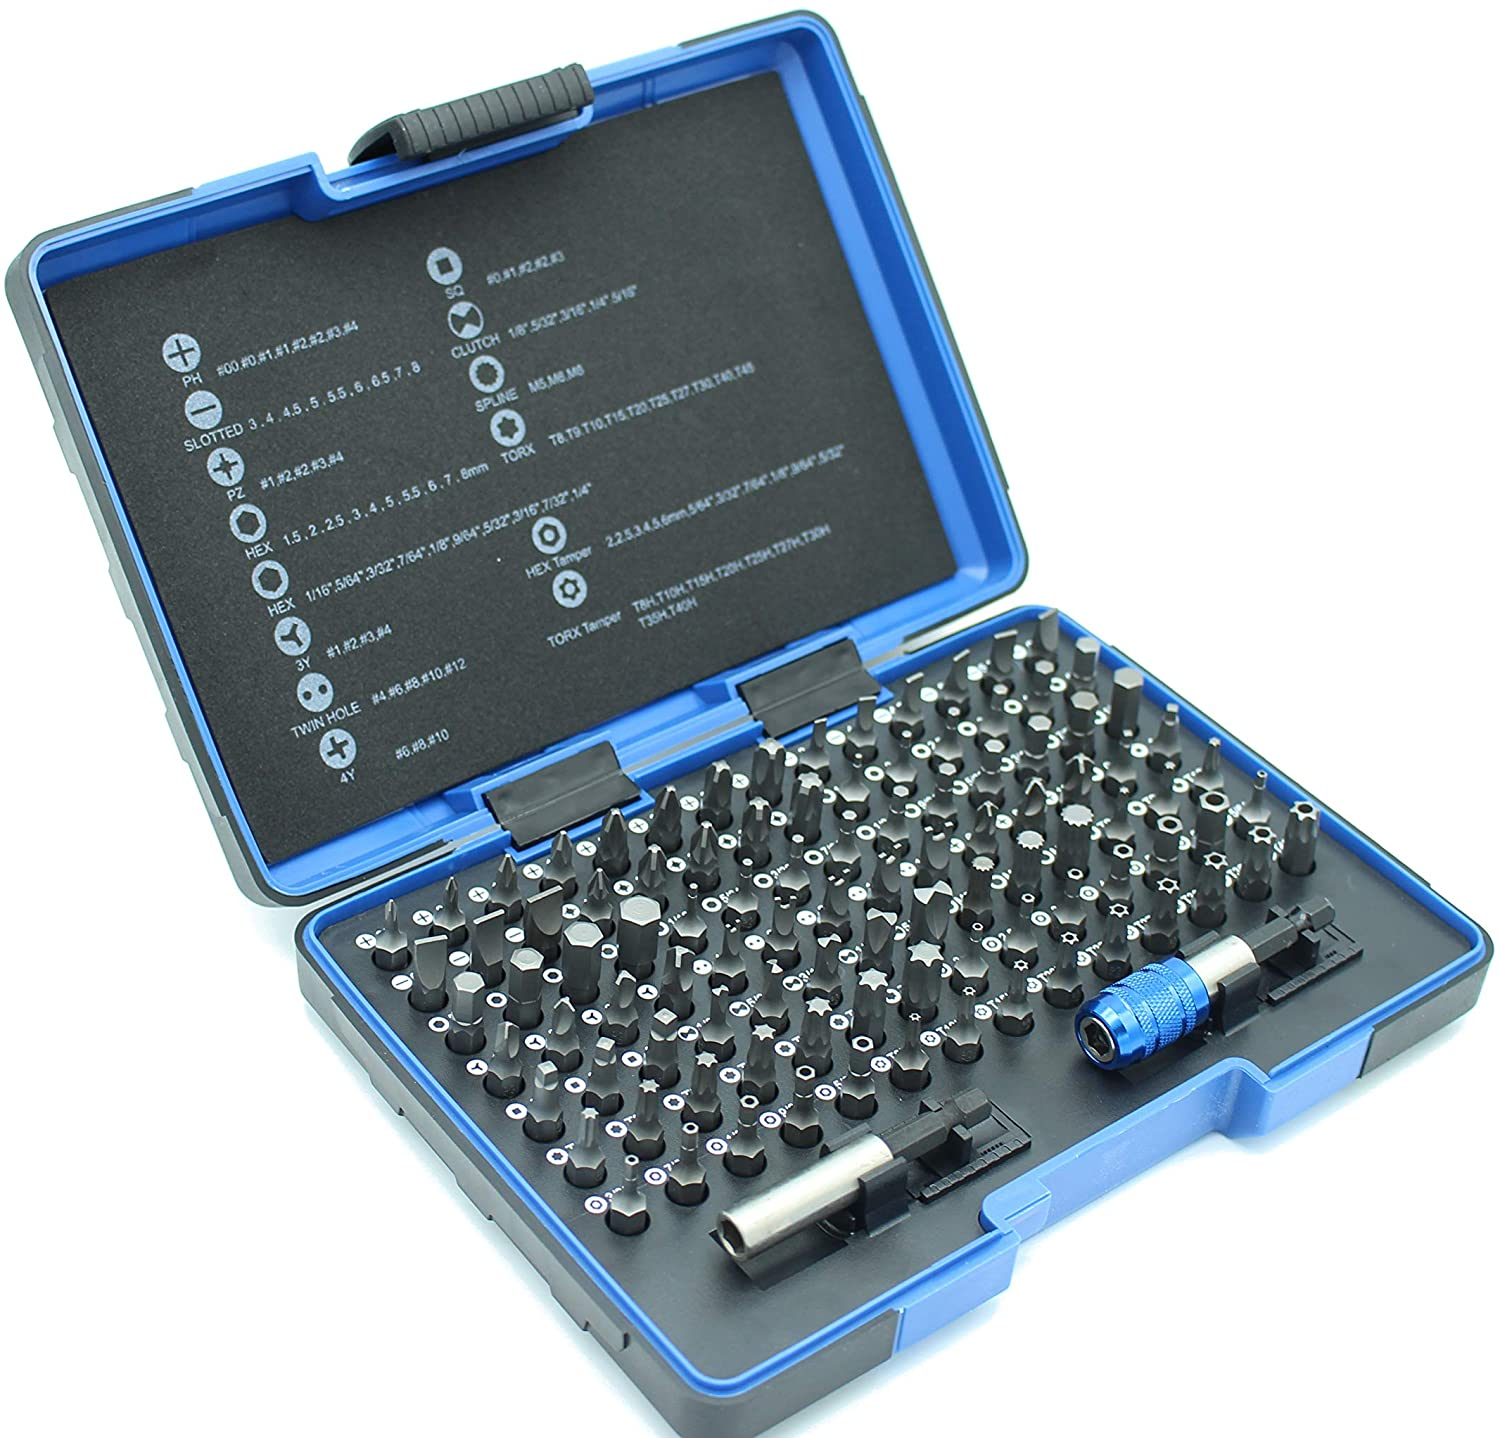 TEMO 100 Piece Oakland Mall Impact Max 75% OFF Ready Security Screwdriver Kit Set Bits wi